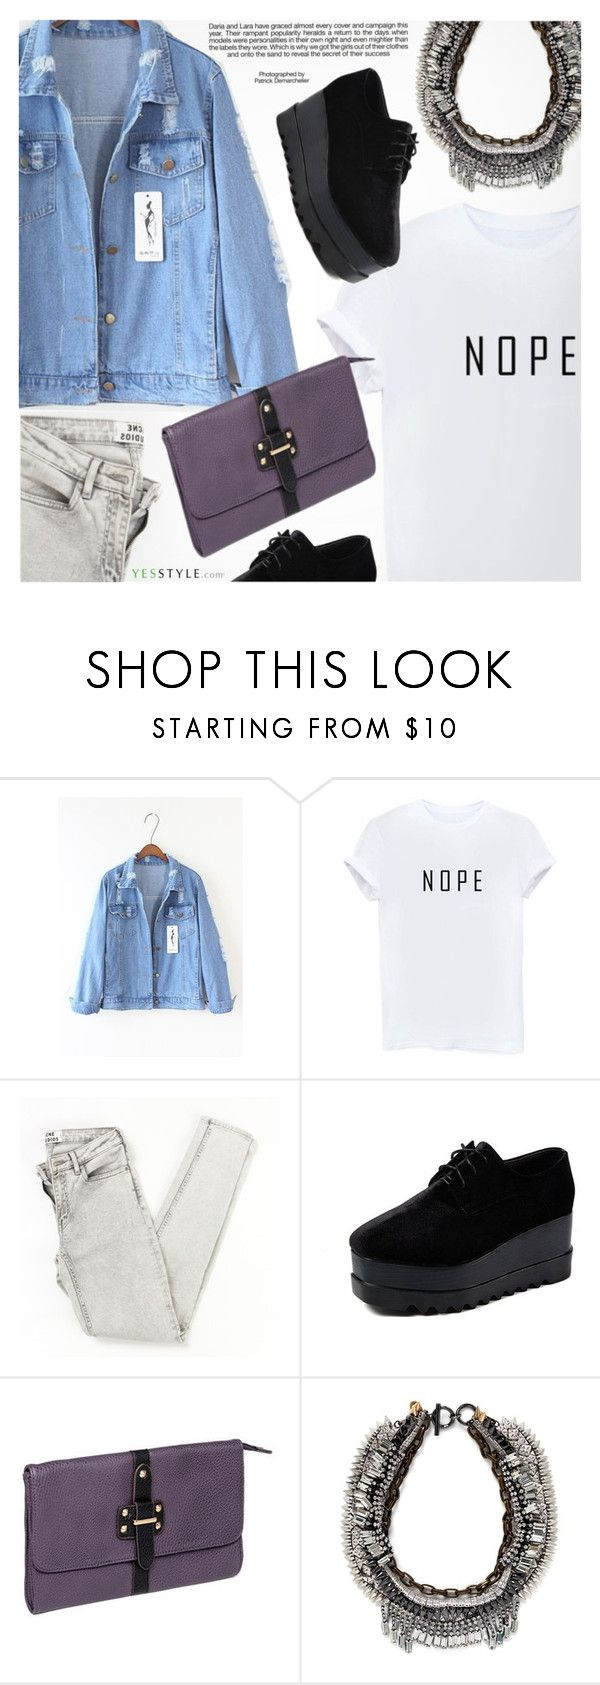 """""""YesStyle - 10% off coupon"""" by pokadoll ❤ liked on Polyvore featuring Industrie, Sienne, yeswalker, Venna, yesstyle and prespring"""